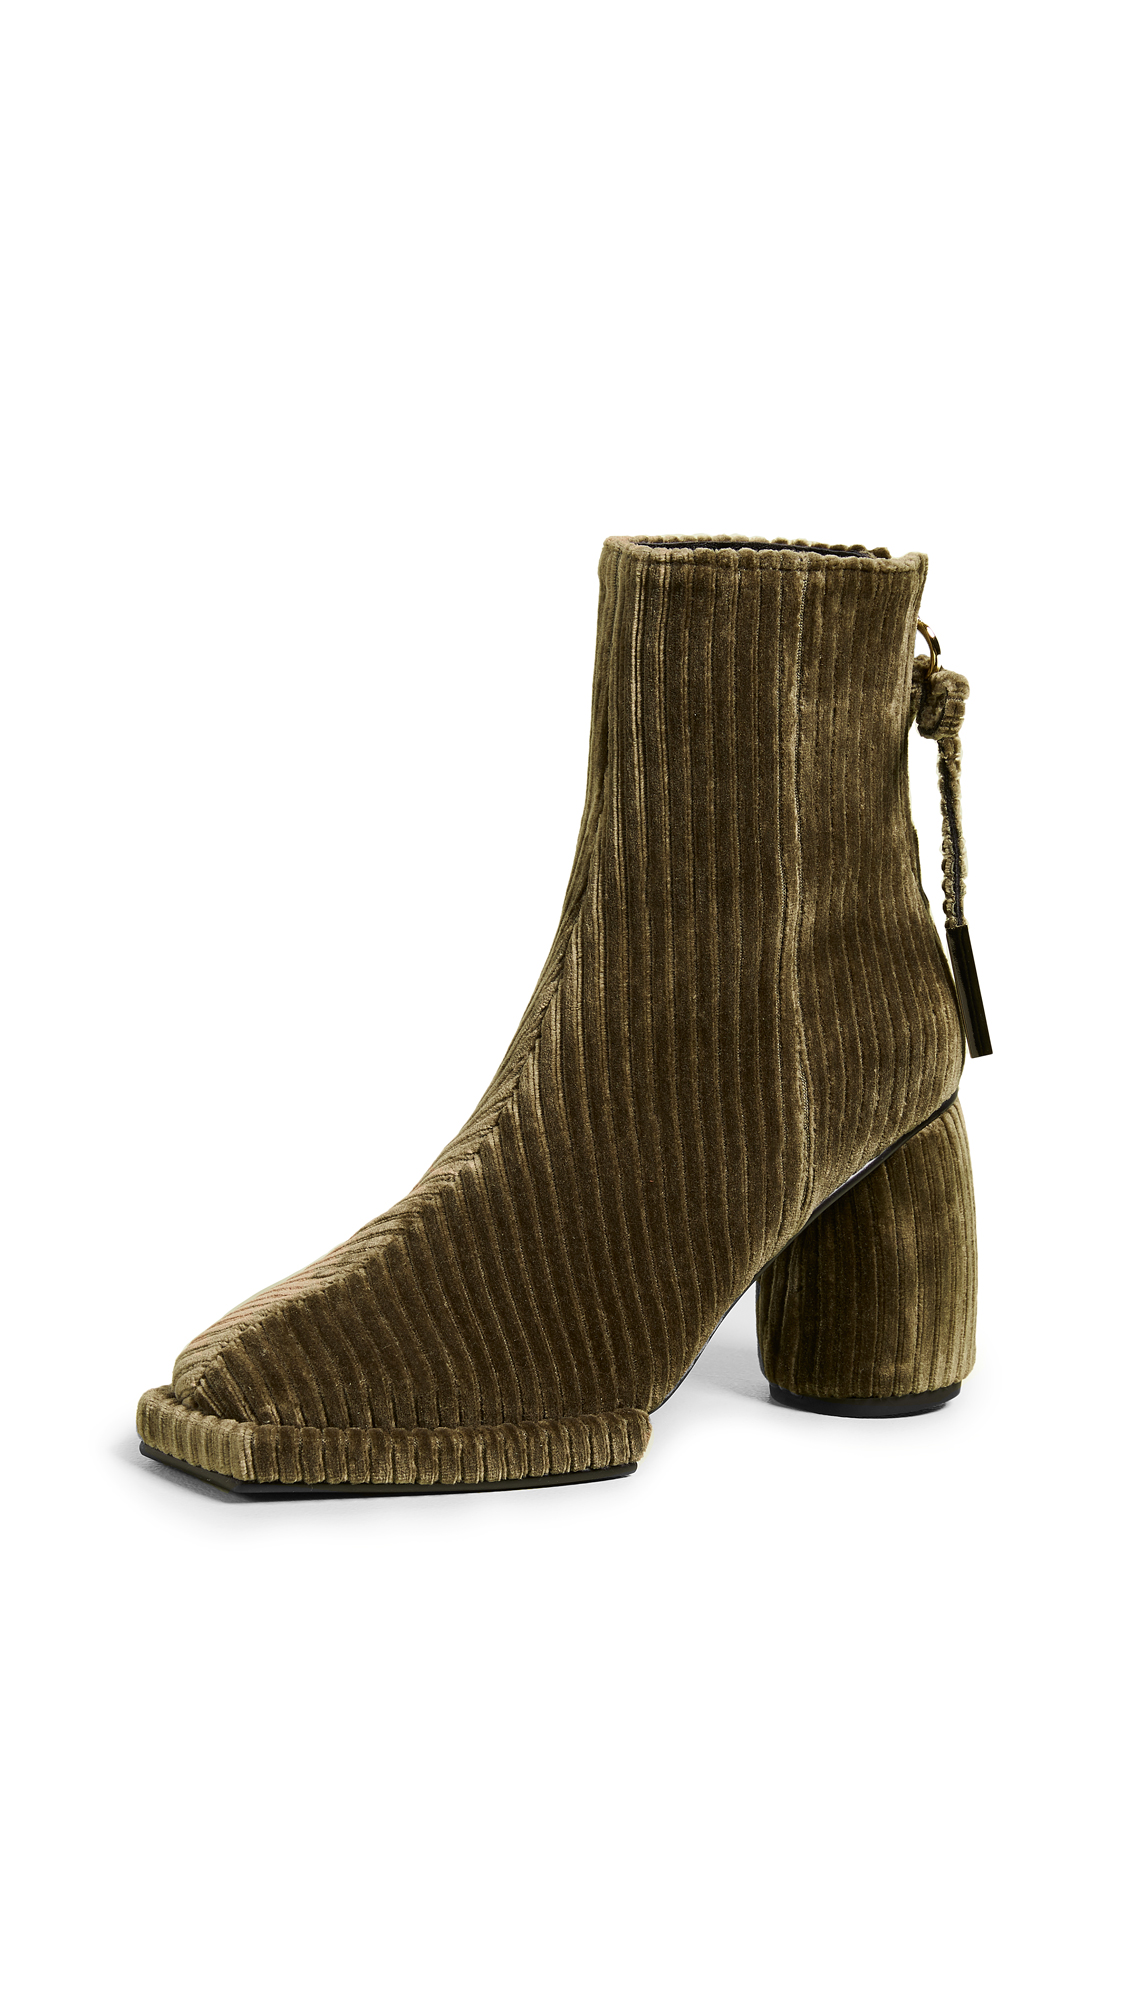 Reike Nen Square Ribbon Half Booties - Khaki